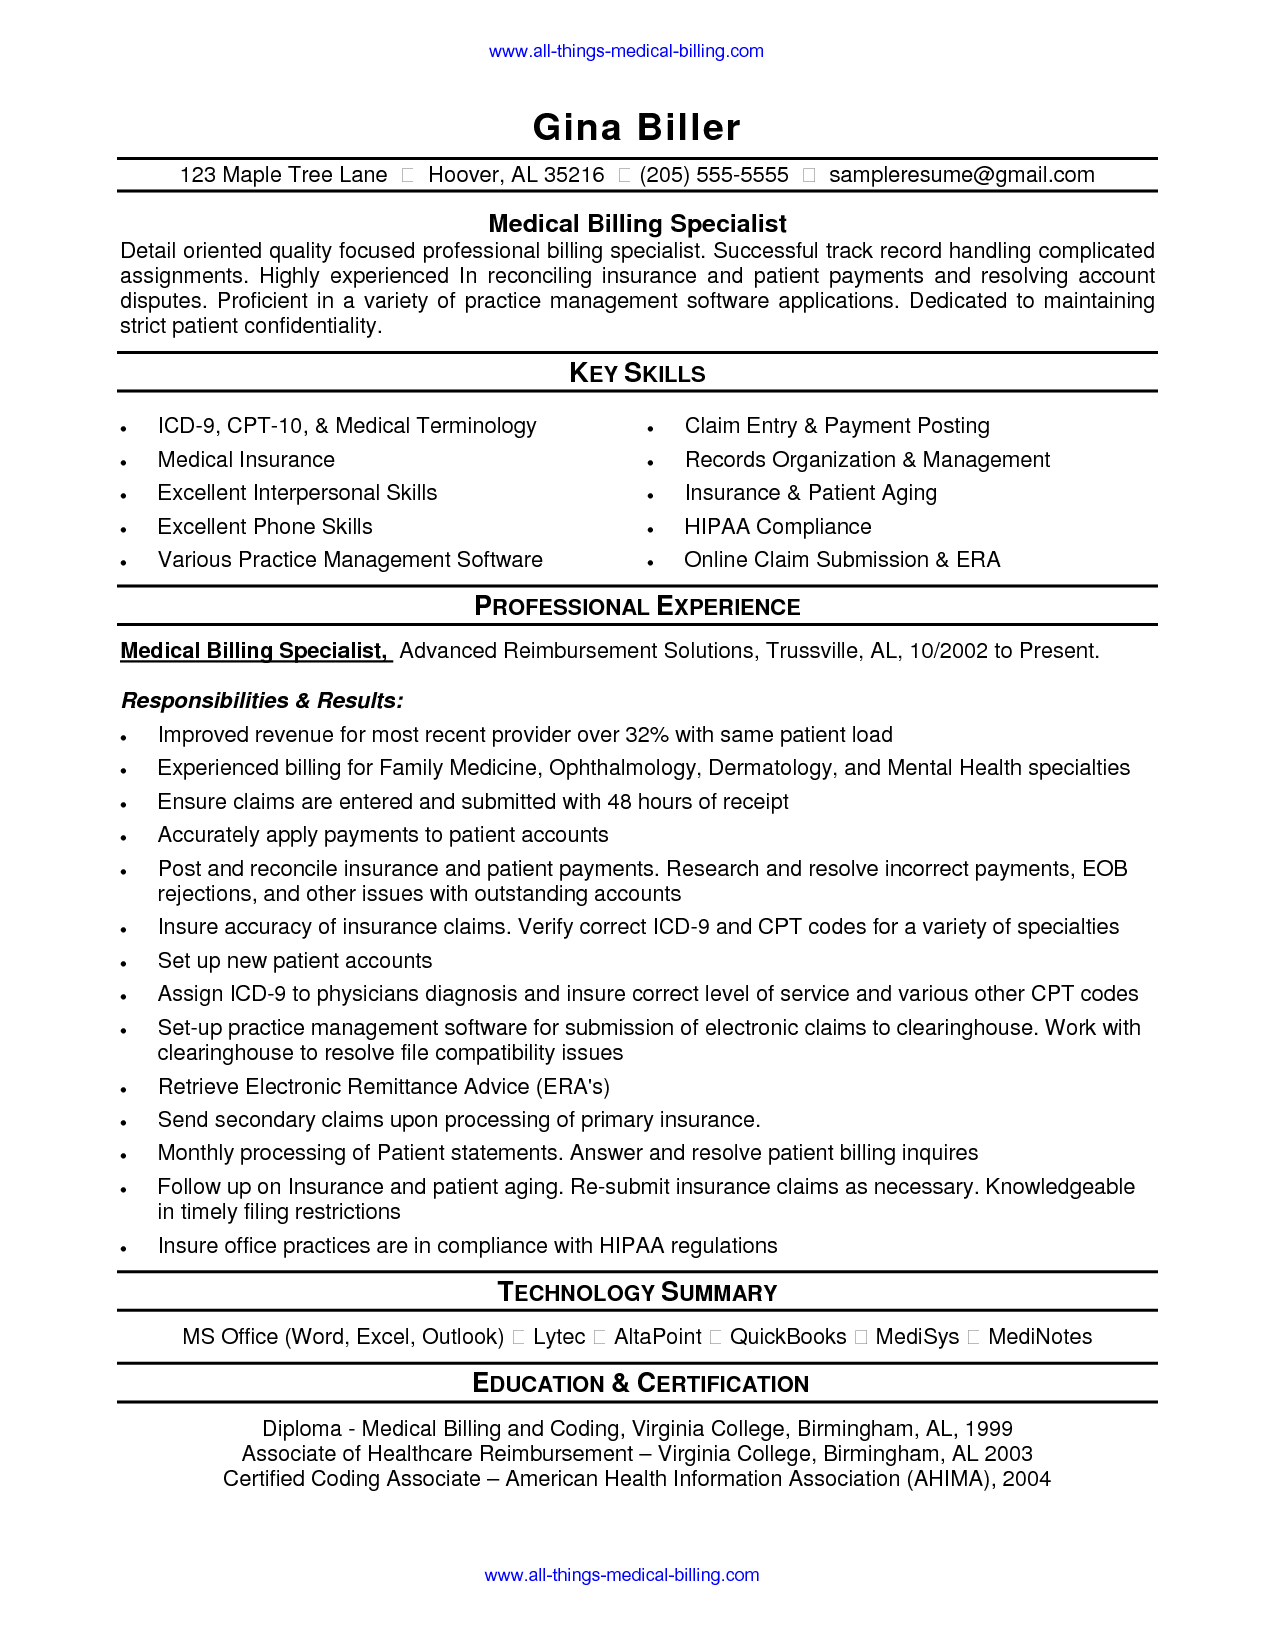 resume examples for health insurance specialist